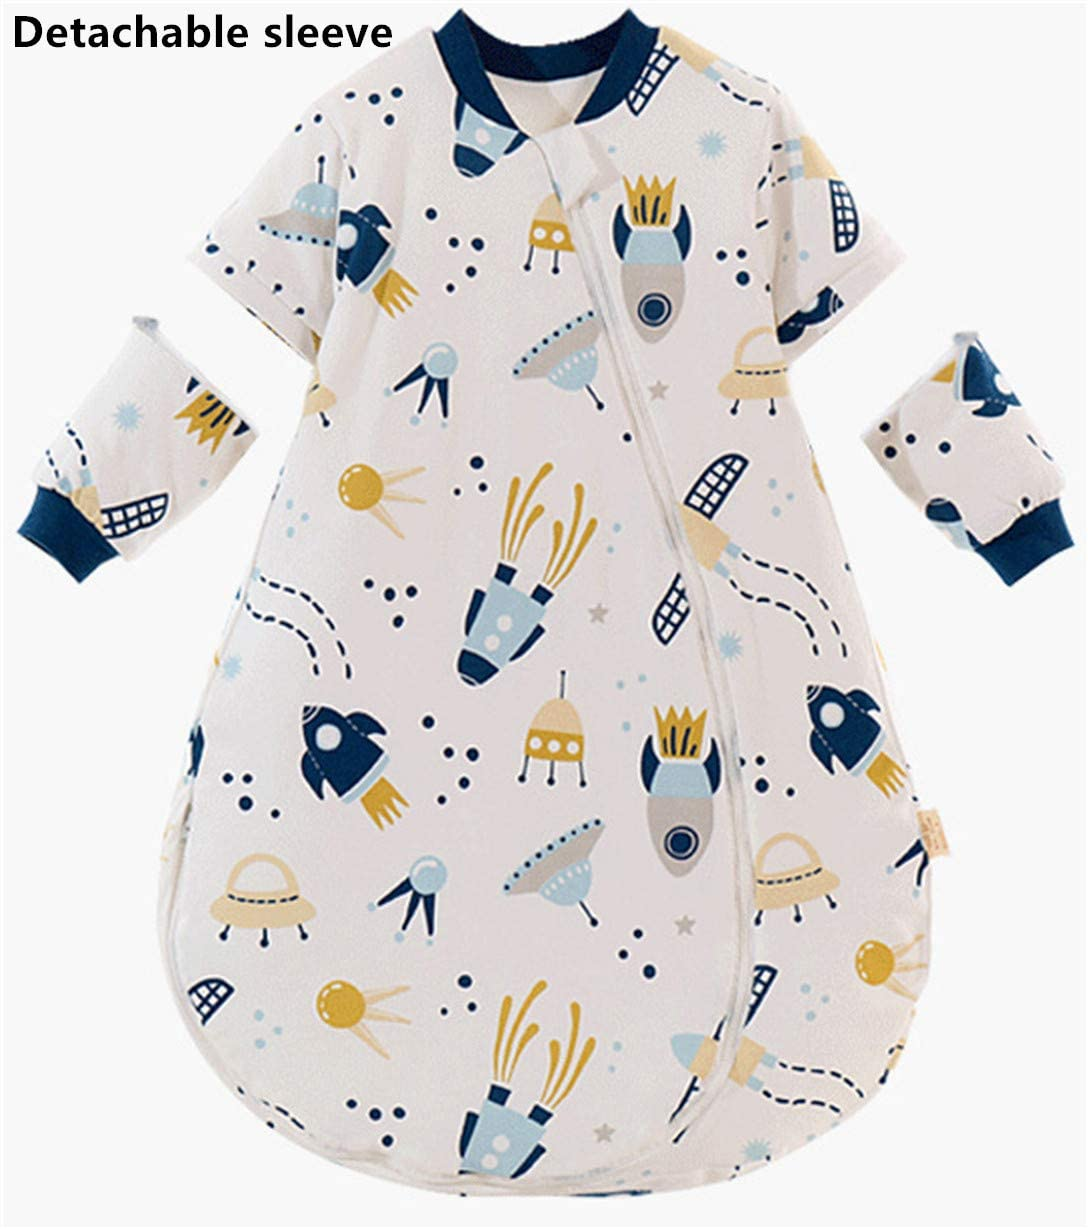 Chilsuessy Baby Sleeping Bag with Removable Long Sleeve Winter Sleeping Bag 2.5 Tog Toddler Sleeping Bag Soft Cotton Wearable Blanket for Girls and Boys 100//18-30 Months Cartoon Giraffe